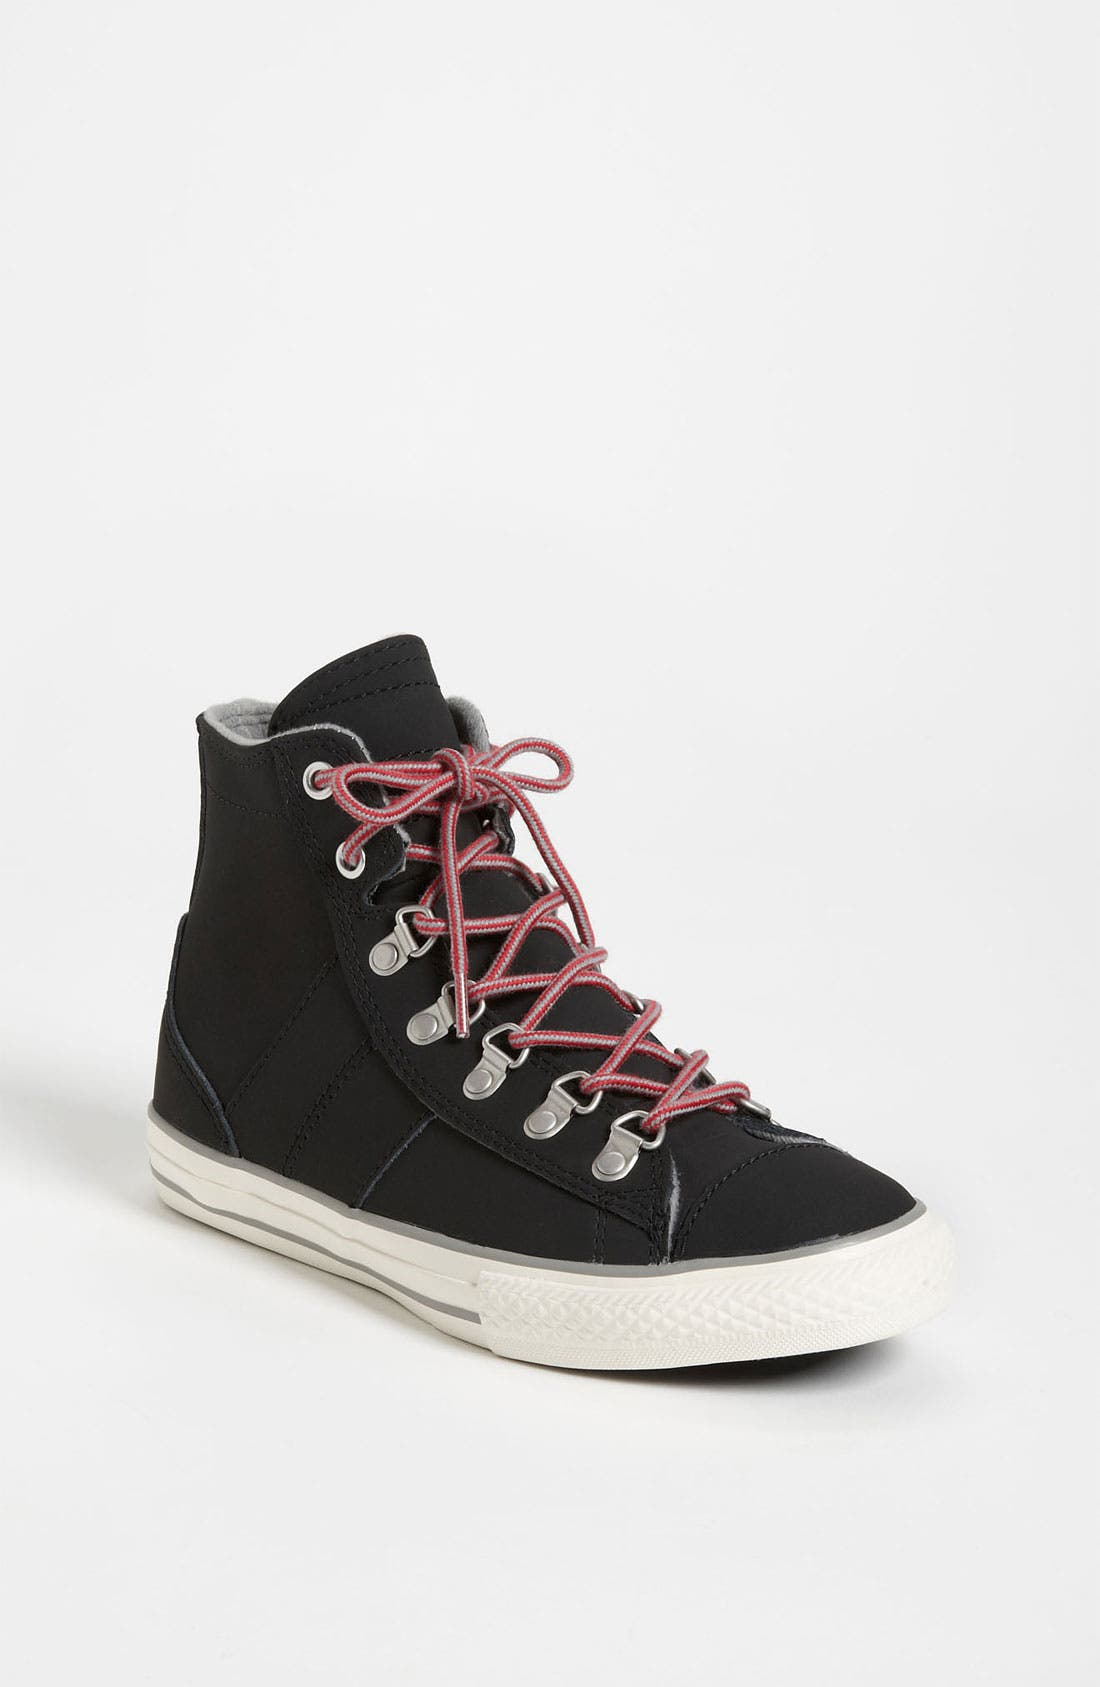 Alternate Image 1 Selected - Converse Chuck Taylor® 'Sneaker Boot' Sneaker (Toddler, Little Kid & Big Kid)